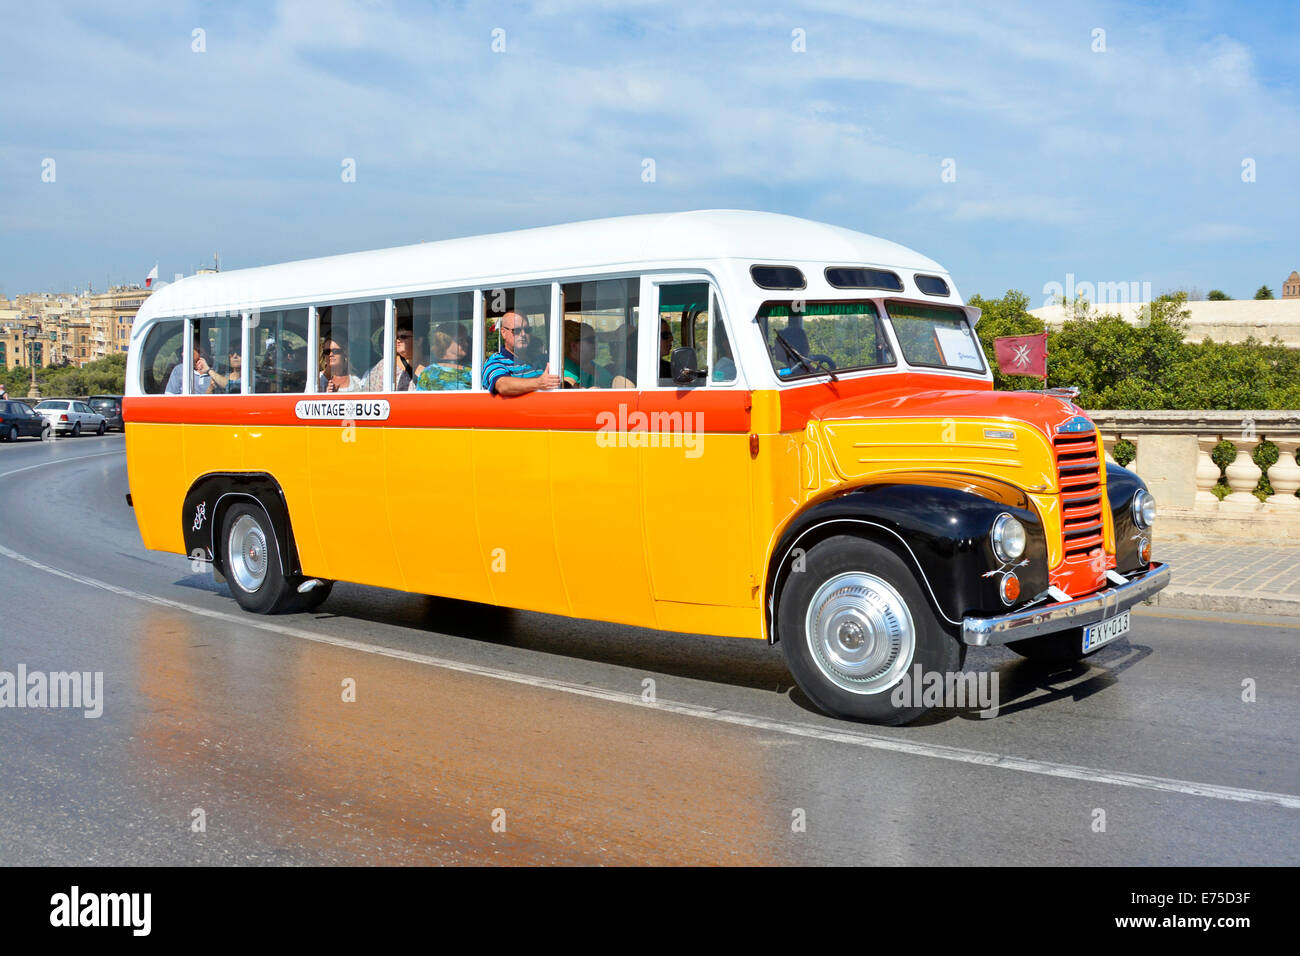 Vintage bus carrying group of people on sightseeing excursion in Valletta Malta - Stock Image